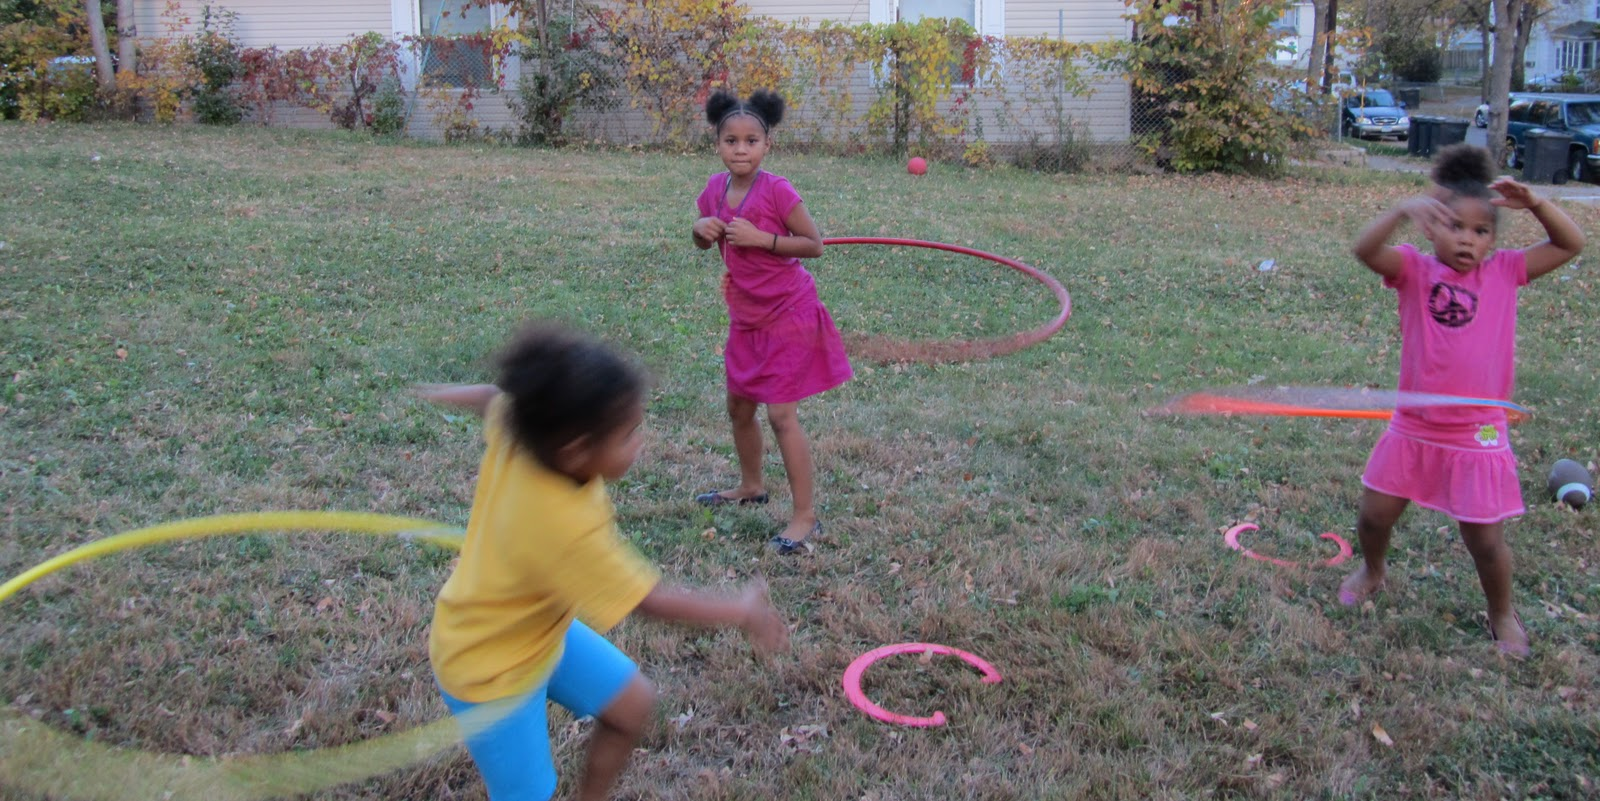 North by northside giving away hula hoops at the habitat closing ceremony - Suspension hula habitat ...